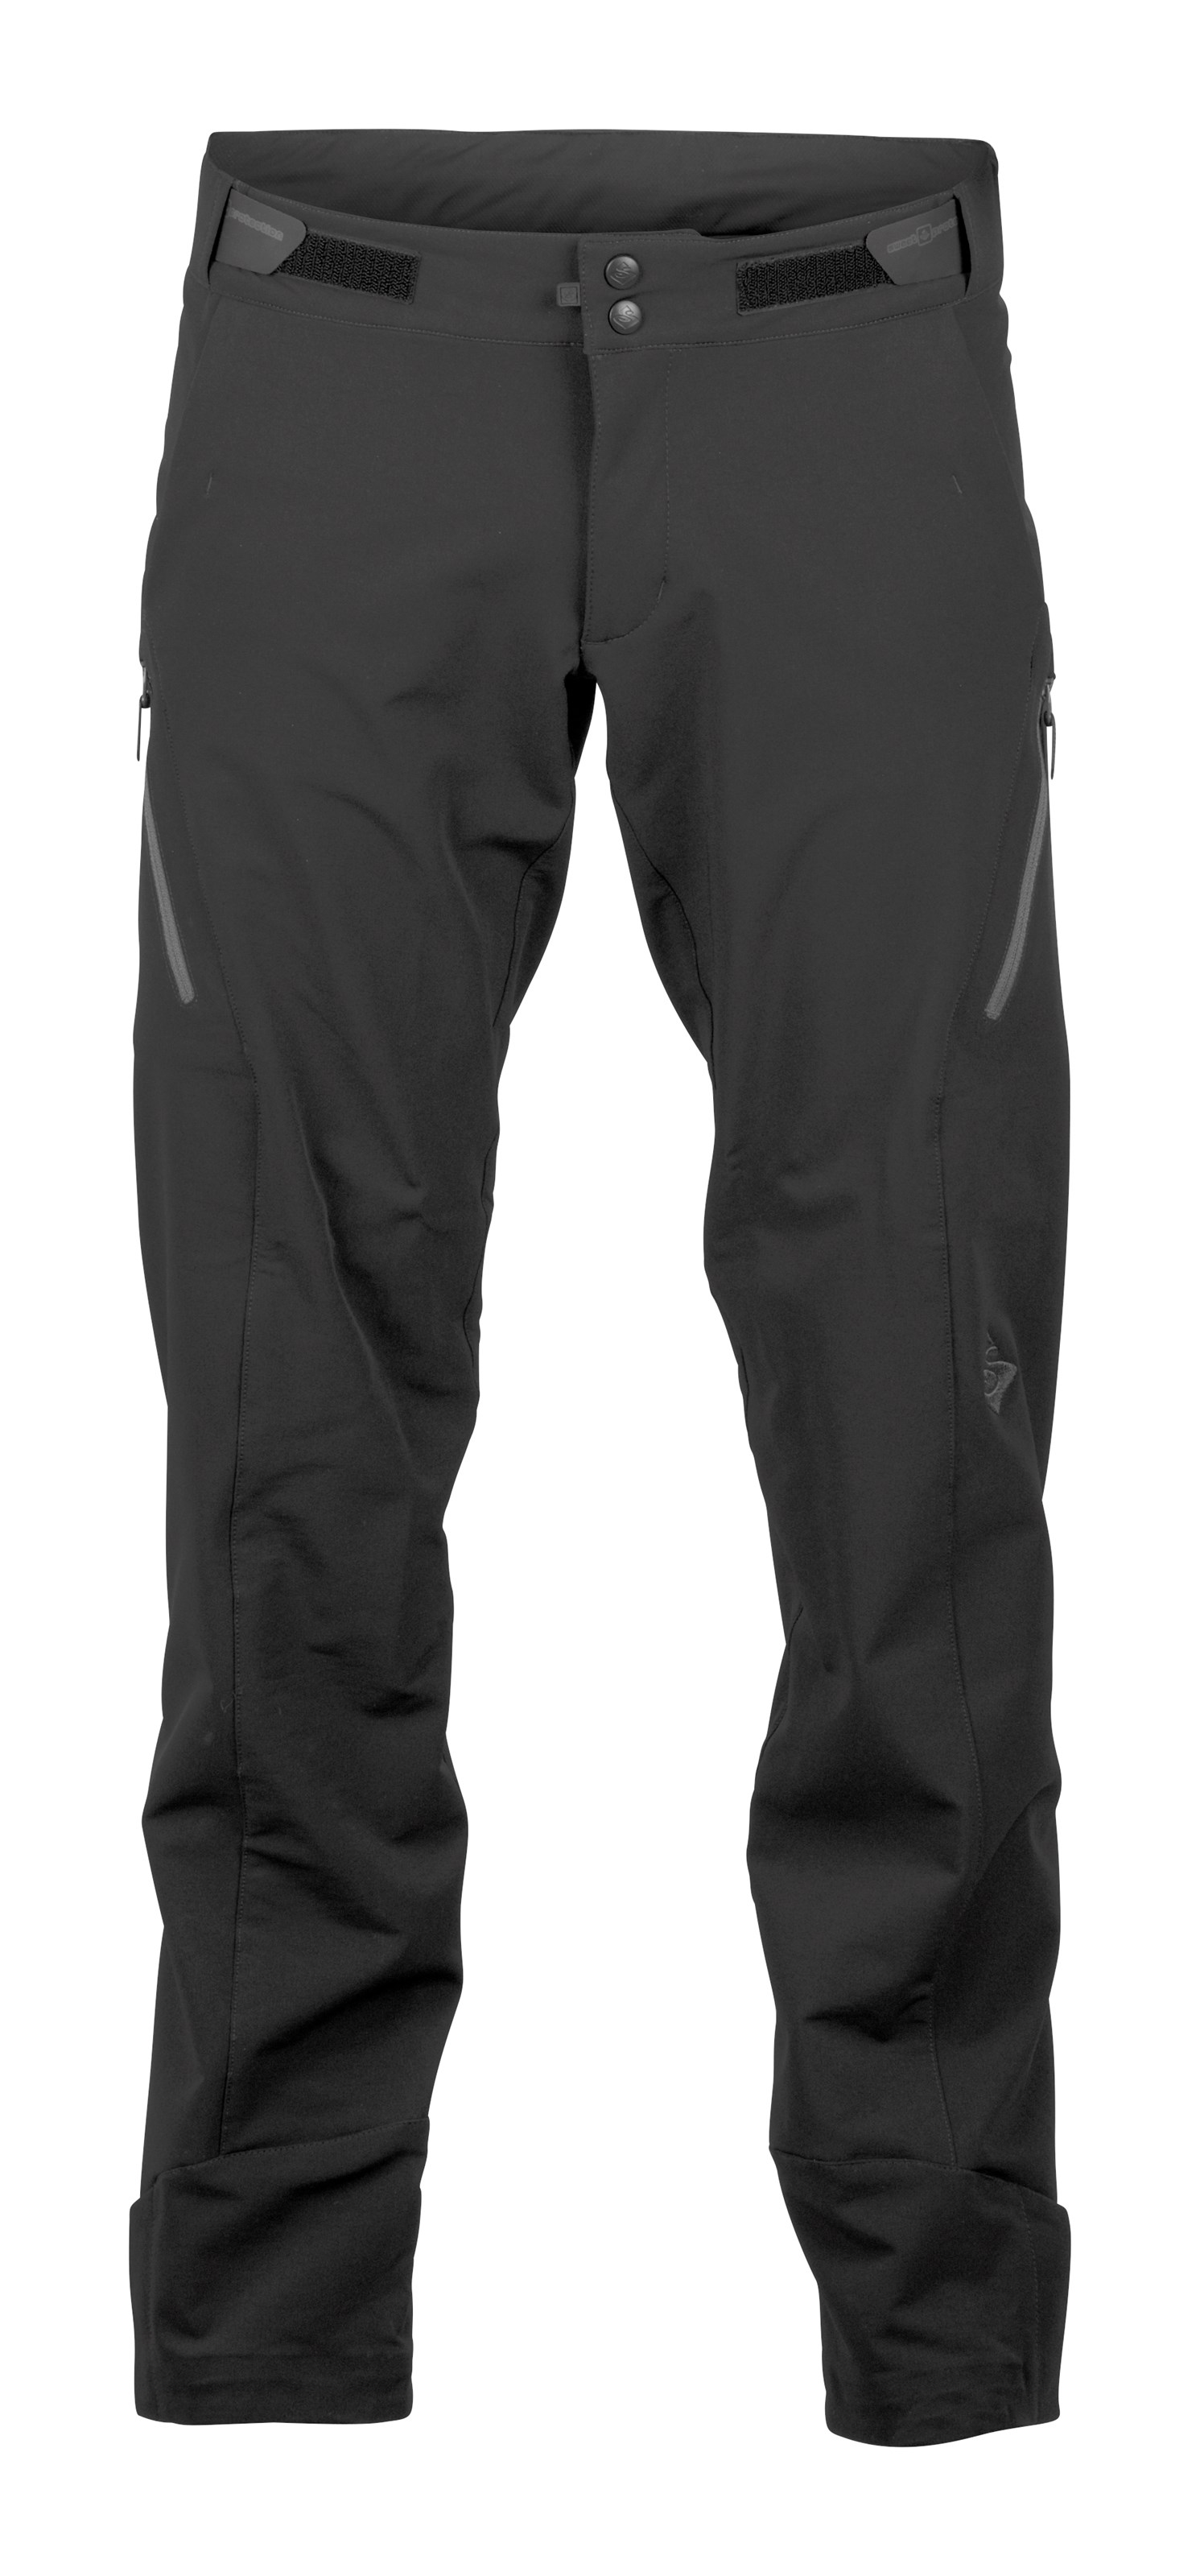 828072-hunter_softshell_pants-true_black-front.jpg